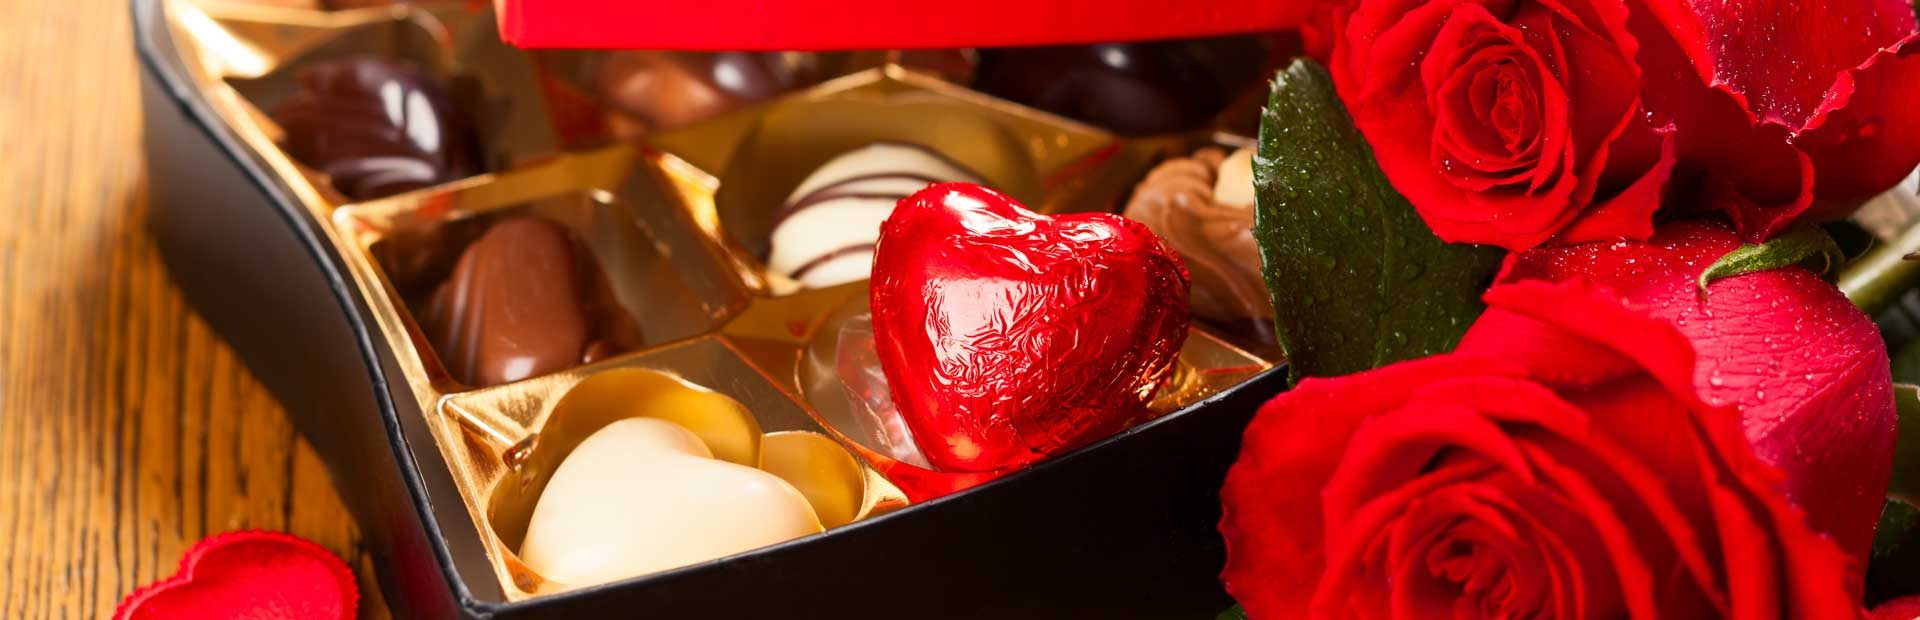 Agile Counterfeiters Target Valentine S Day Incopro